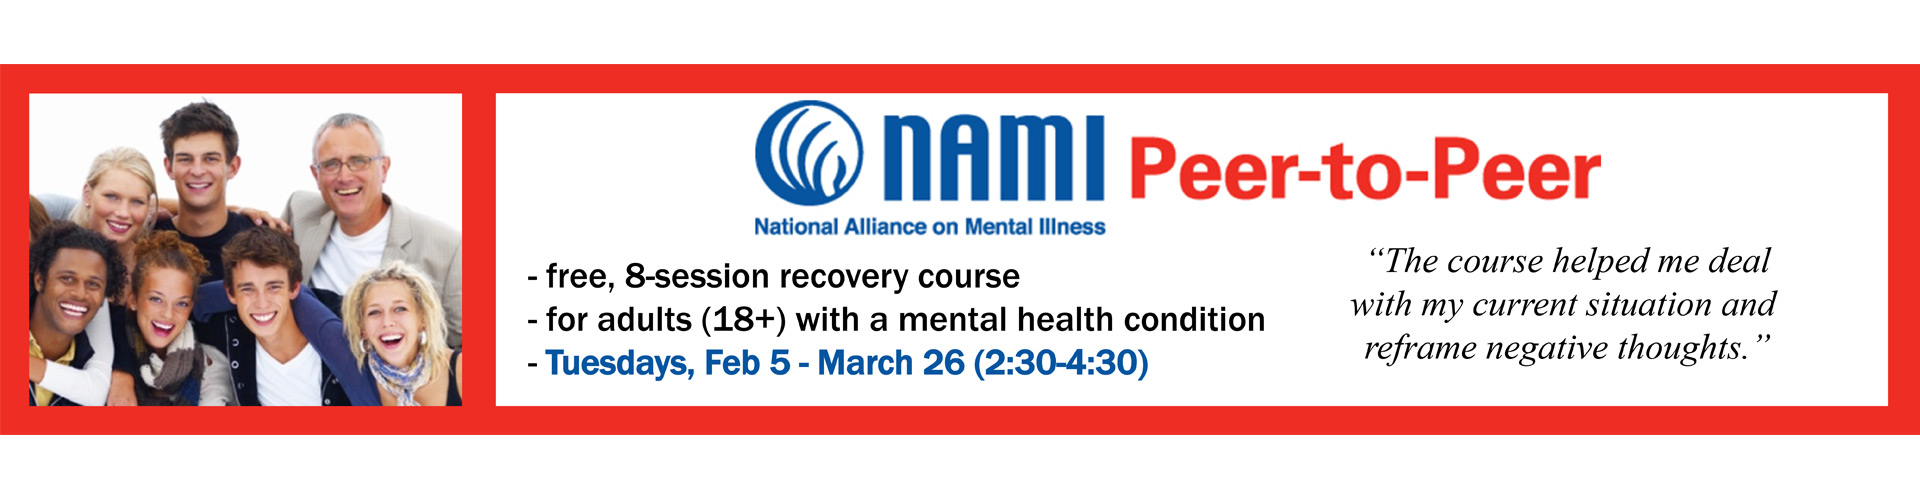 NAMI Fond du Lac Peer-to-Peer Program 2019